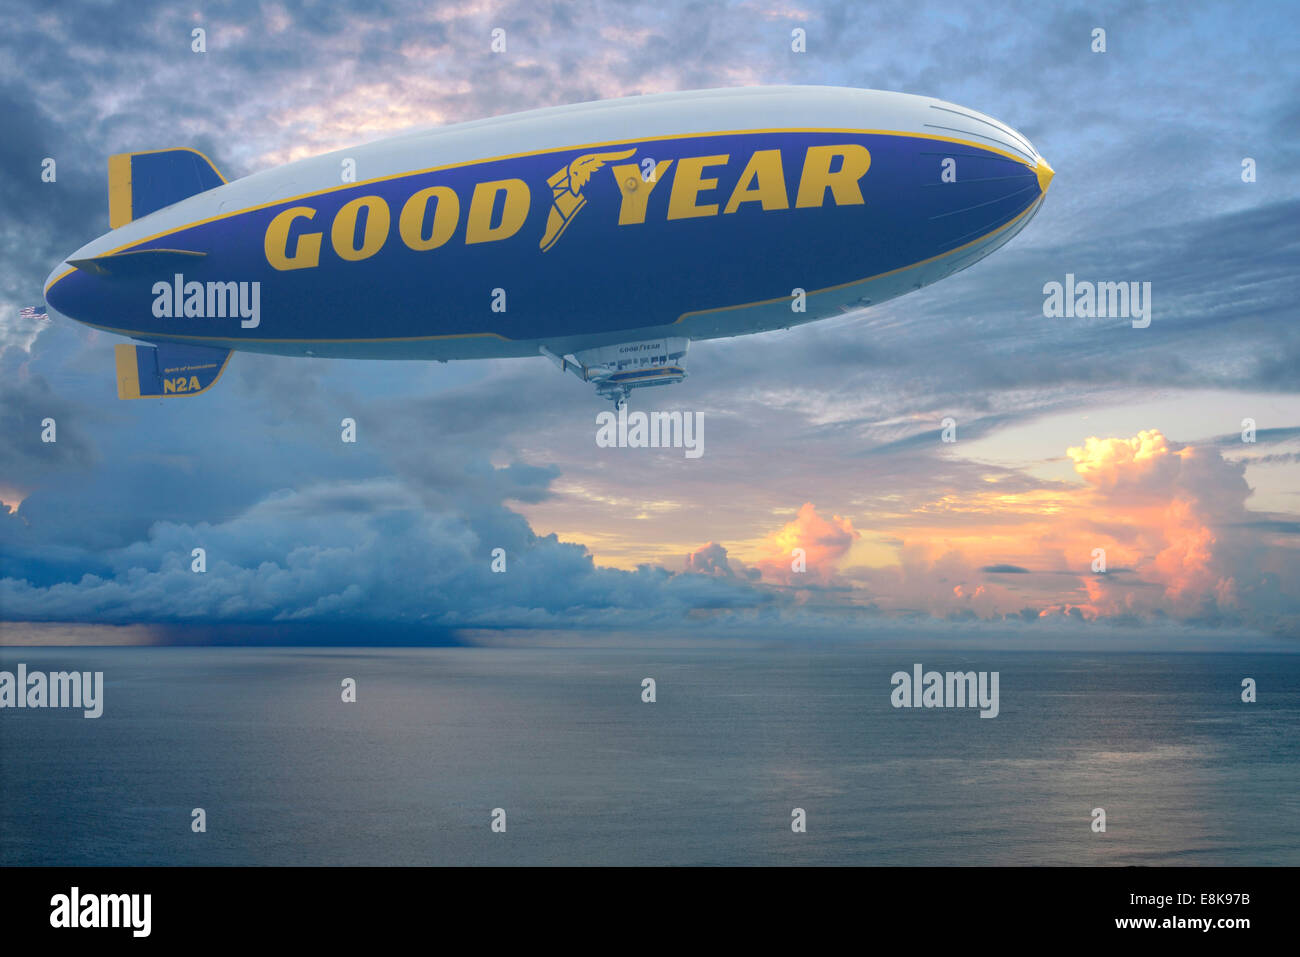 The Goodyear Blimp makes its way across the Atlantic shore just after sunrise as a thunderstorm builds on the horizon. - Stock Image